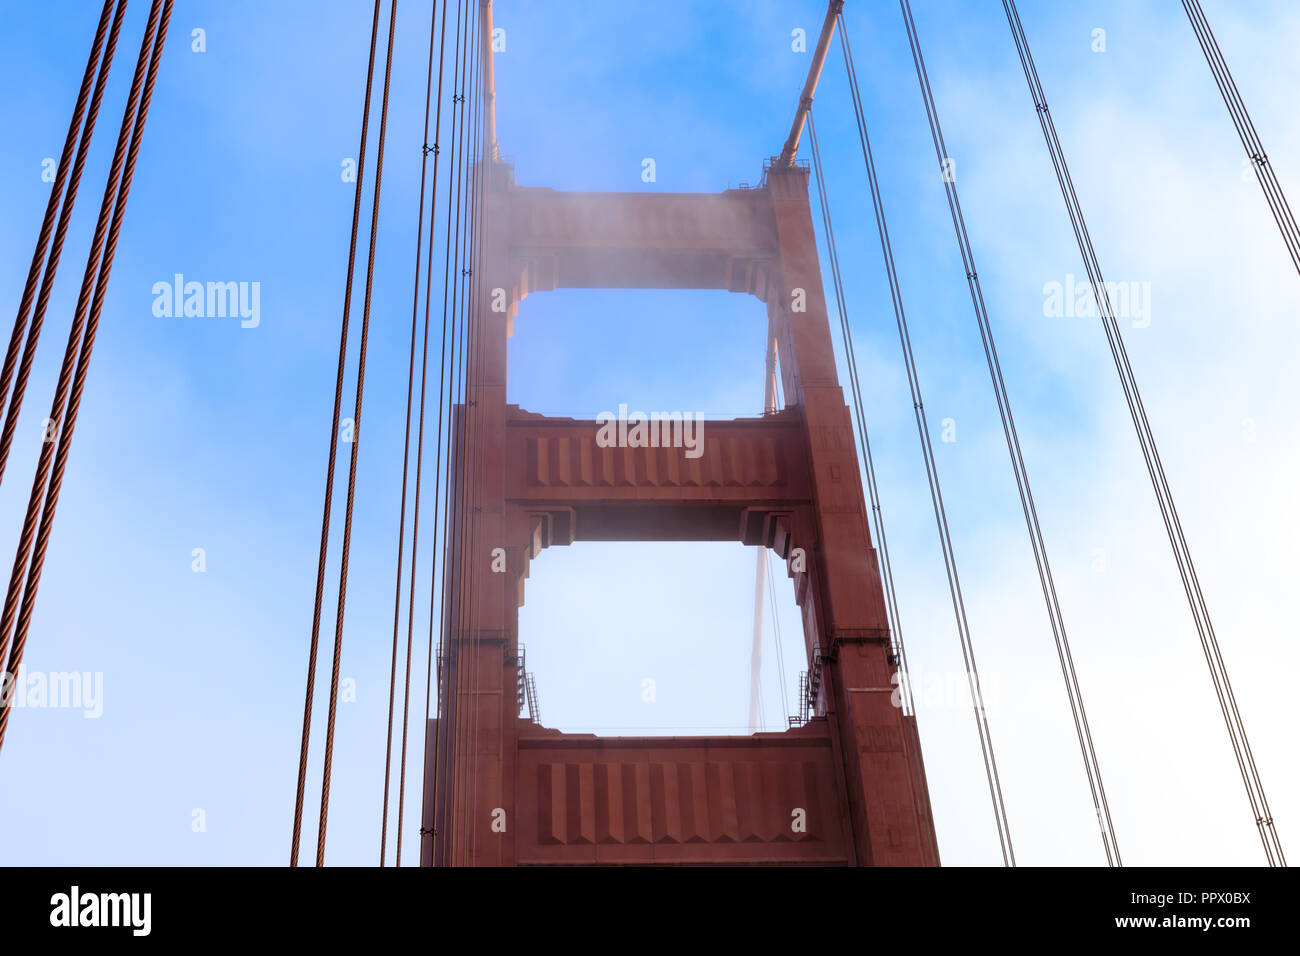 Fog rolling in on the Golden Gate Bridge tower. - Stock Image